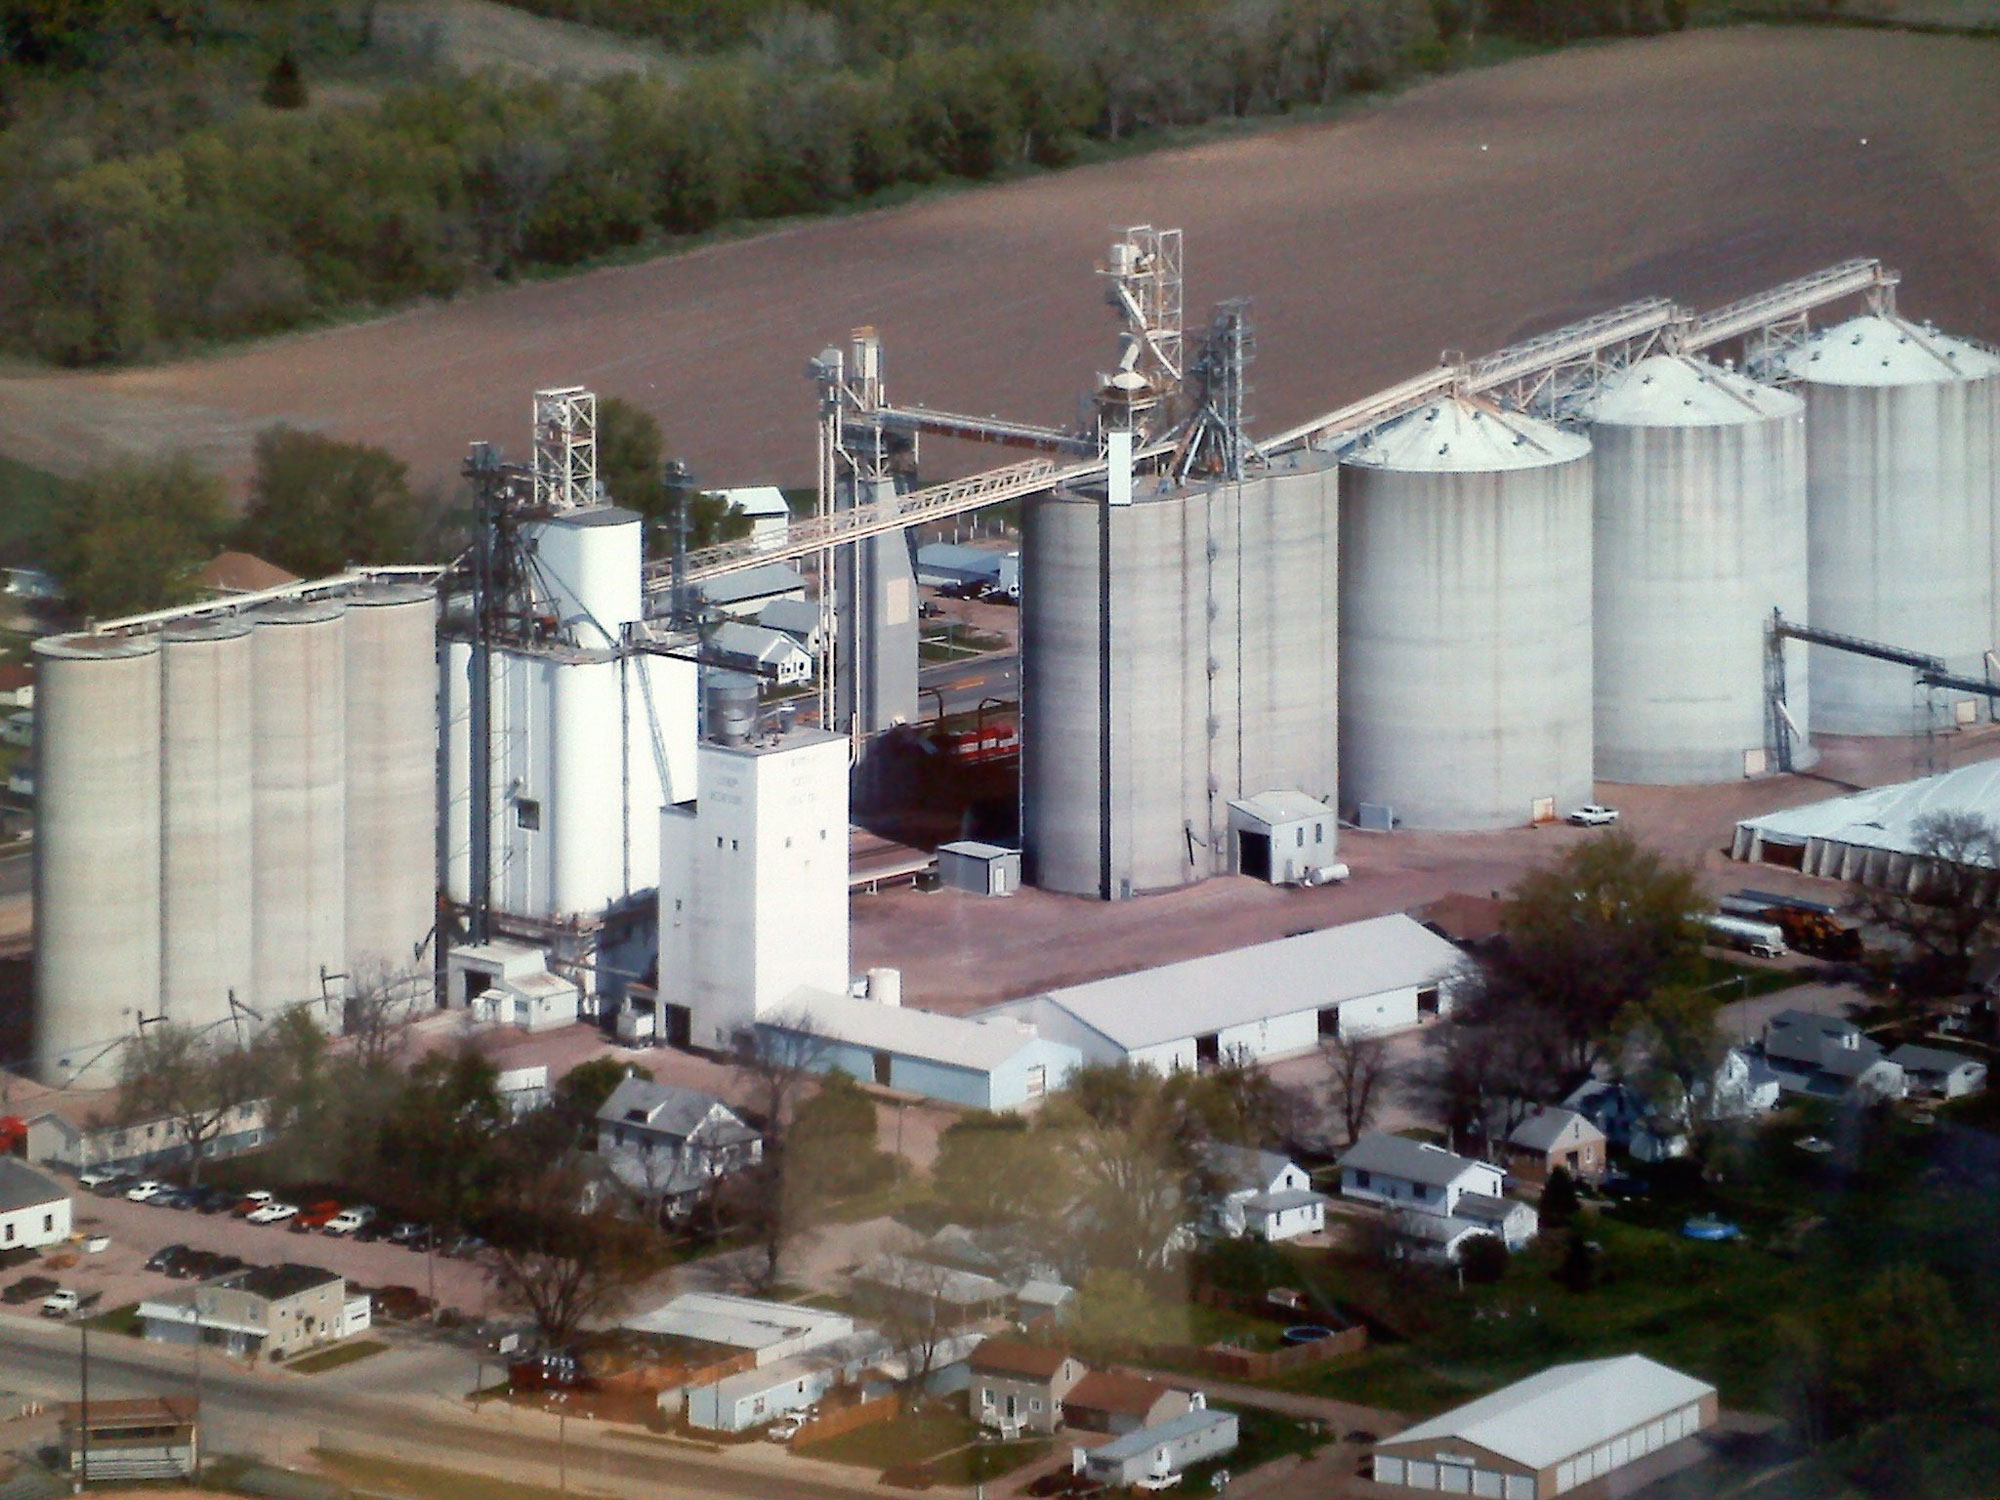 The FCC Hinton, IA location has 4.8 million bushels of concrete upright storage.